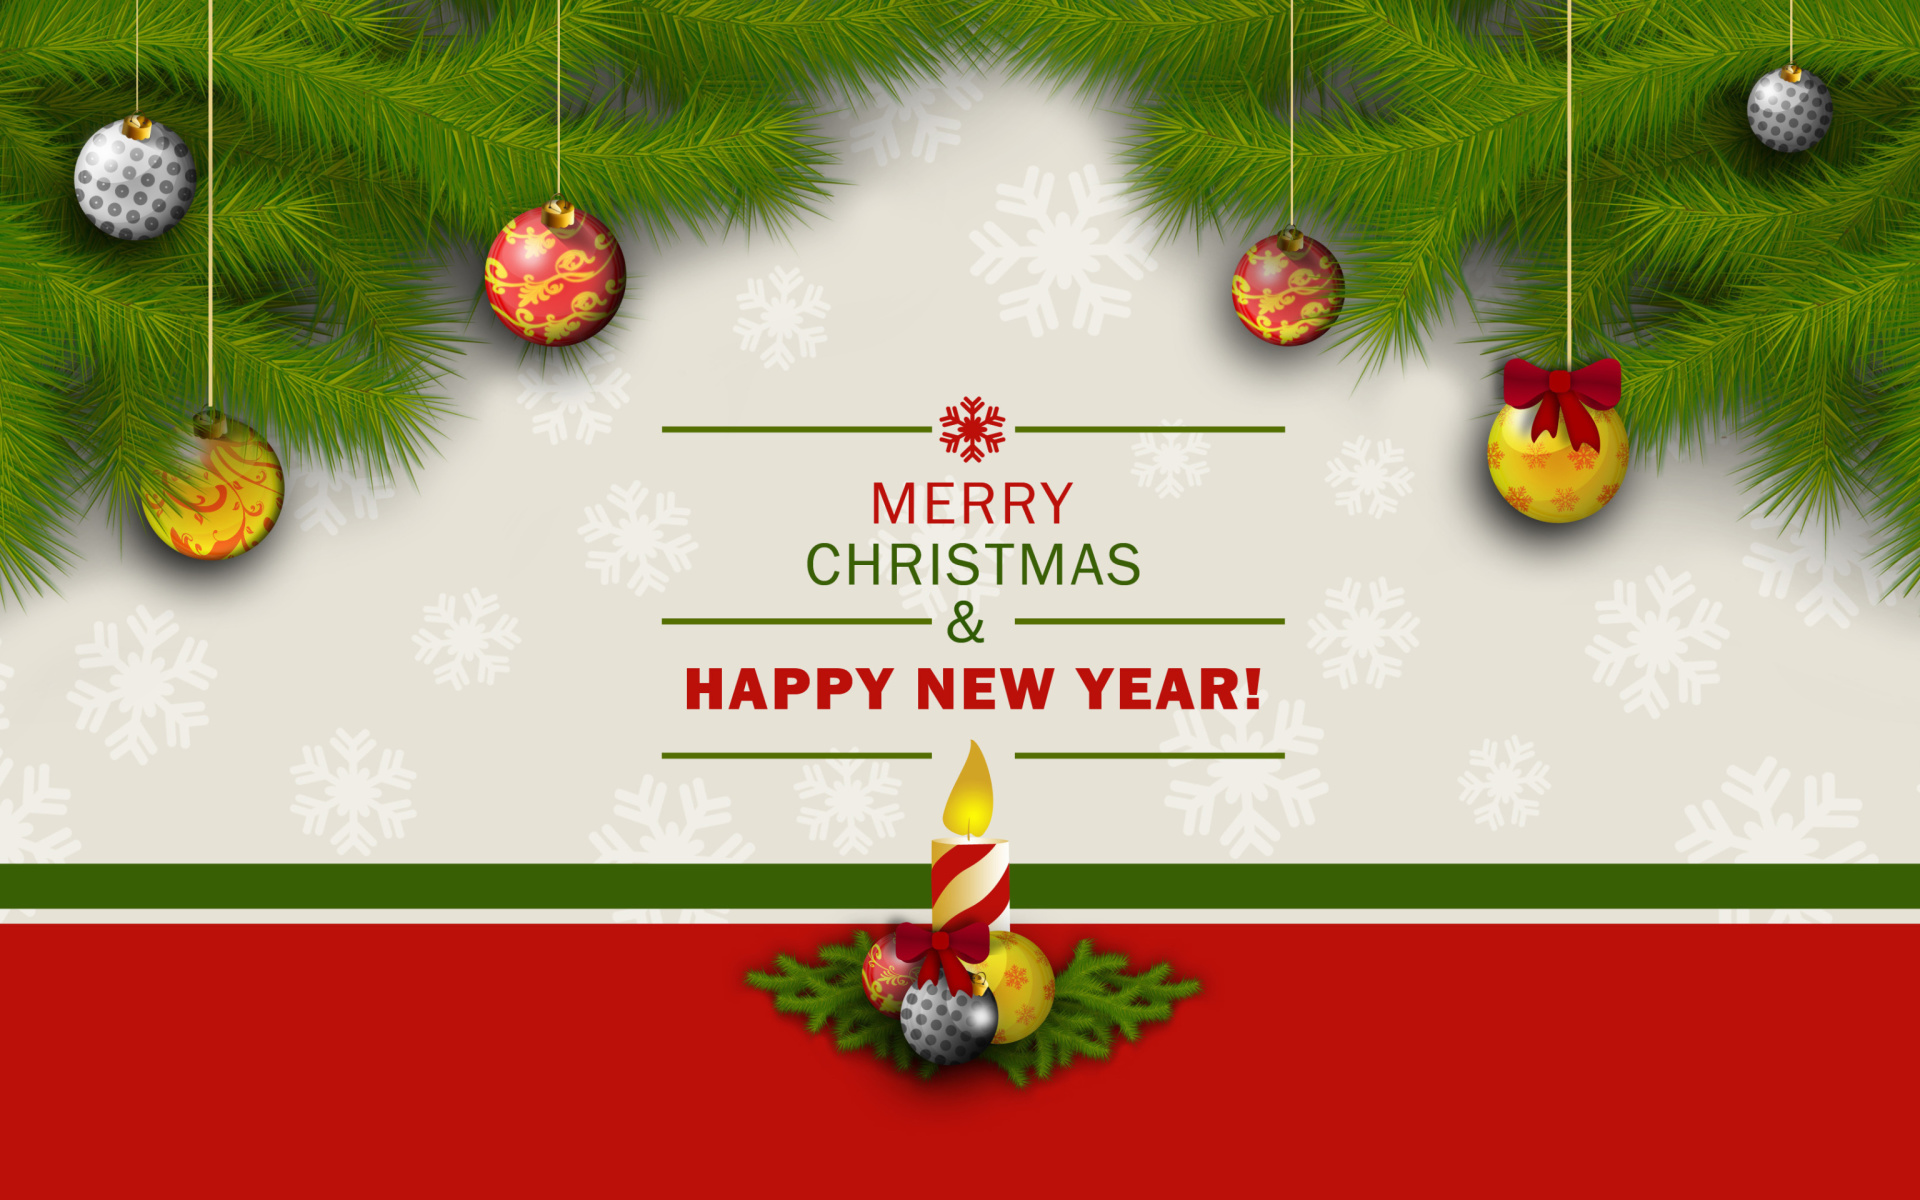 Merry Christmas And Happy New Year 2015 4k Hd Desktop: Merry Christmas And Happy New Year Wallpaper For